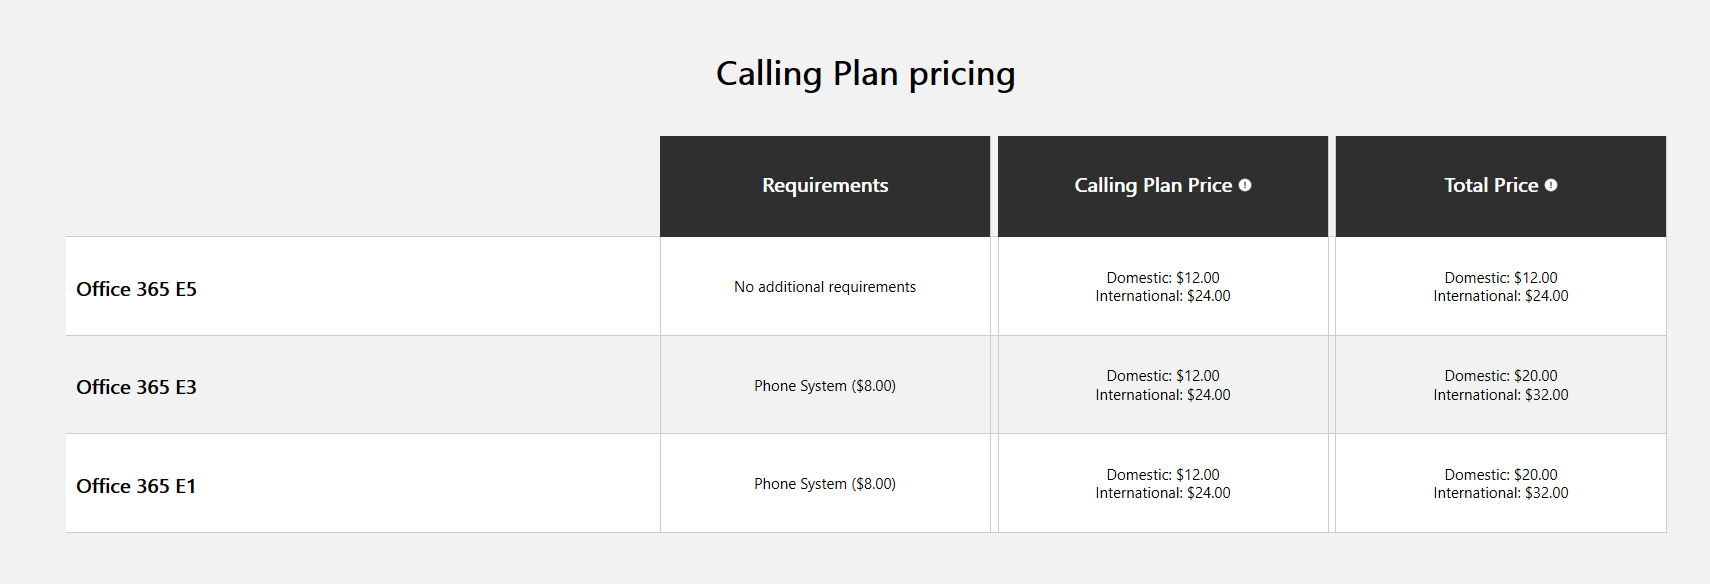 Microsoft Calling Plan Pricing Table